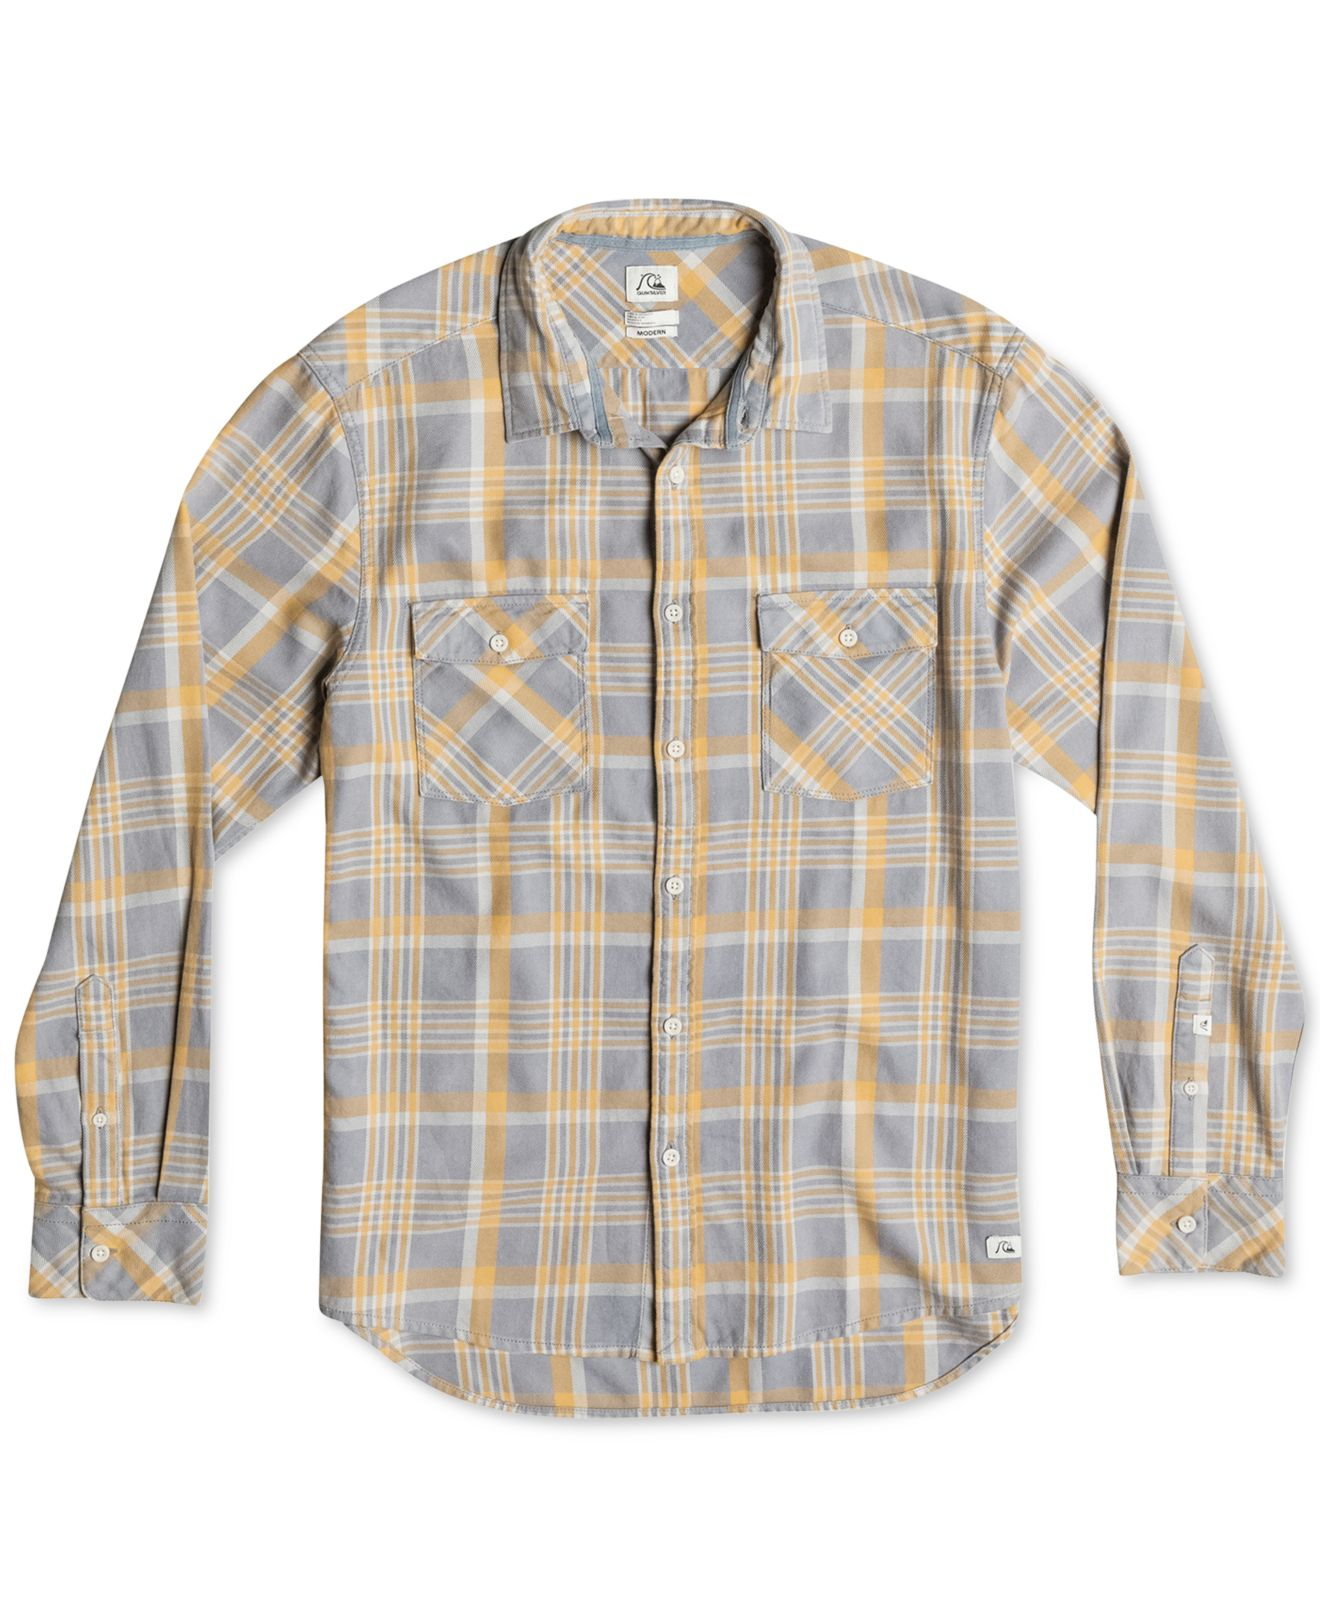 Quiksilver tang titan flannel plaid acid wash shirt in for How to wash flannel shirts